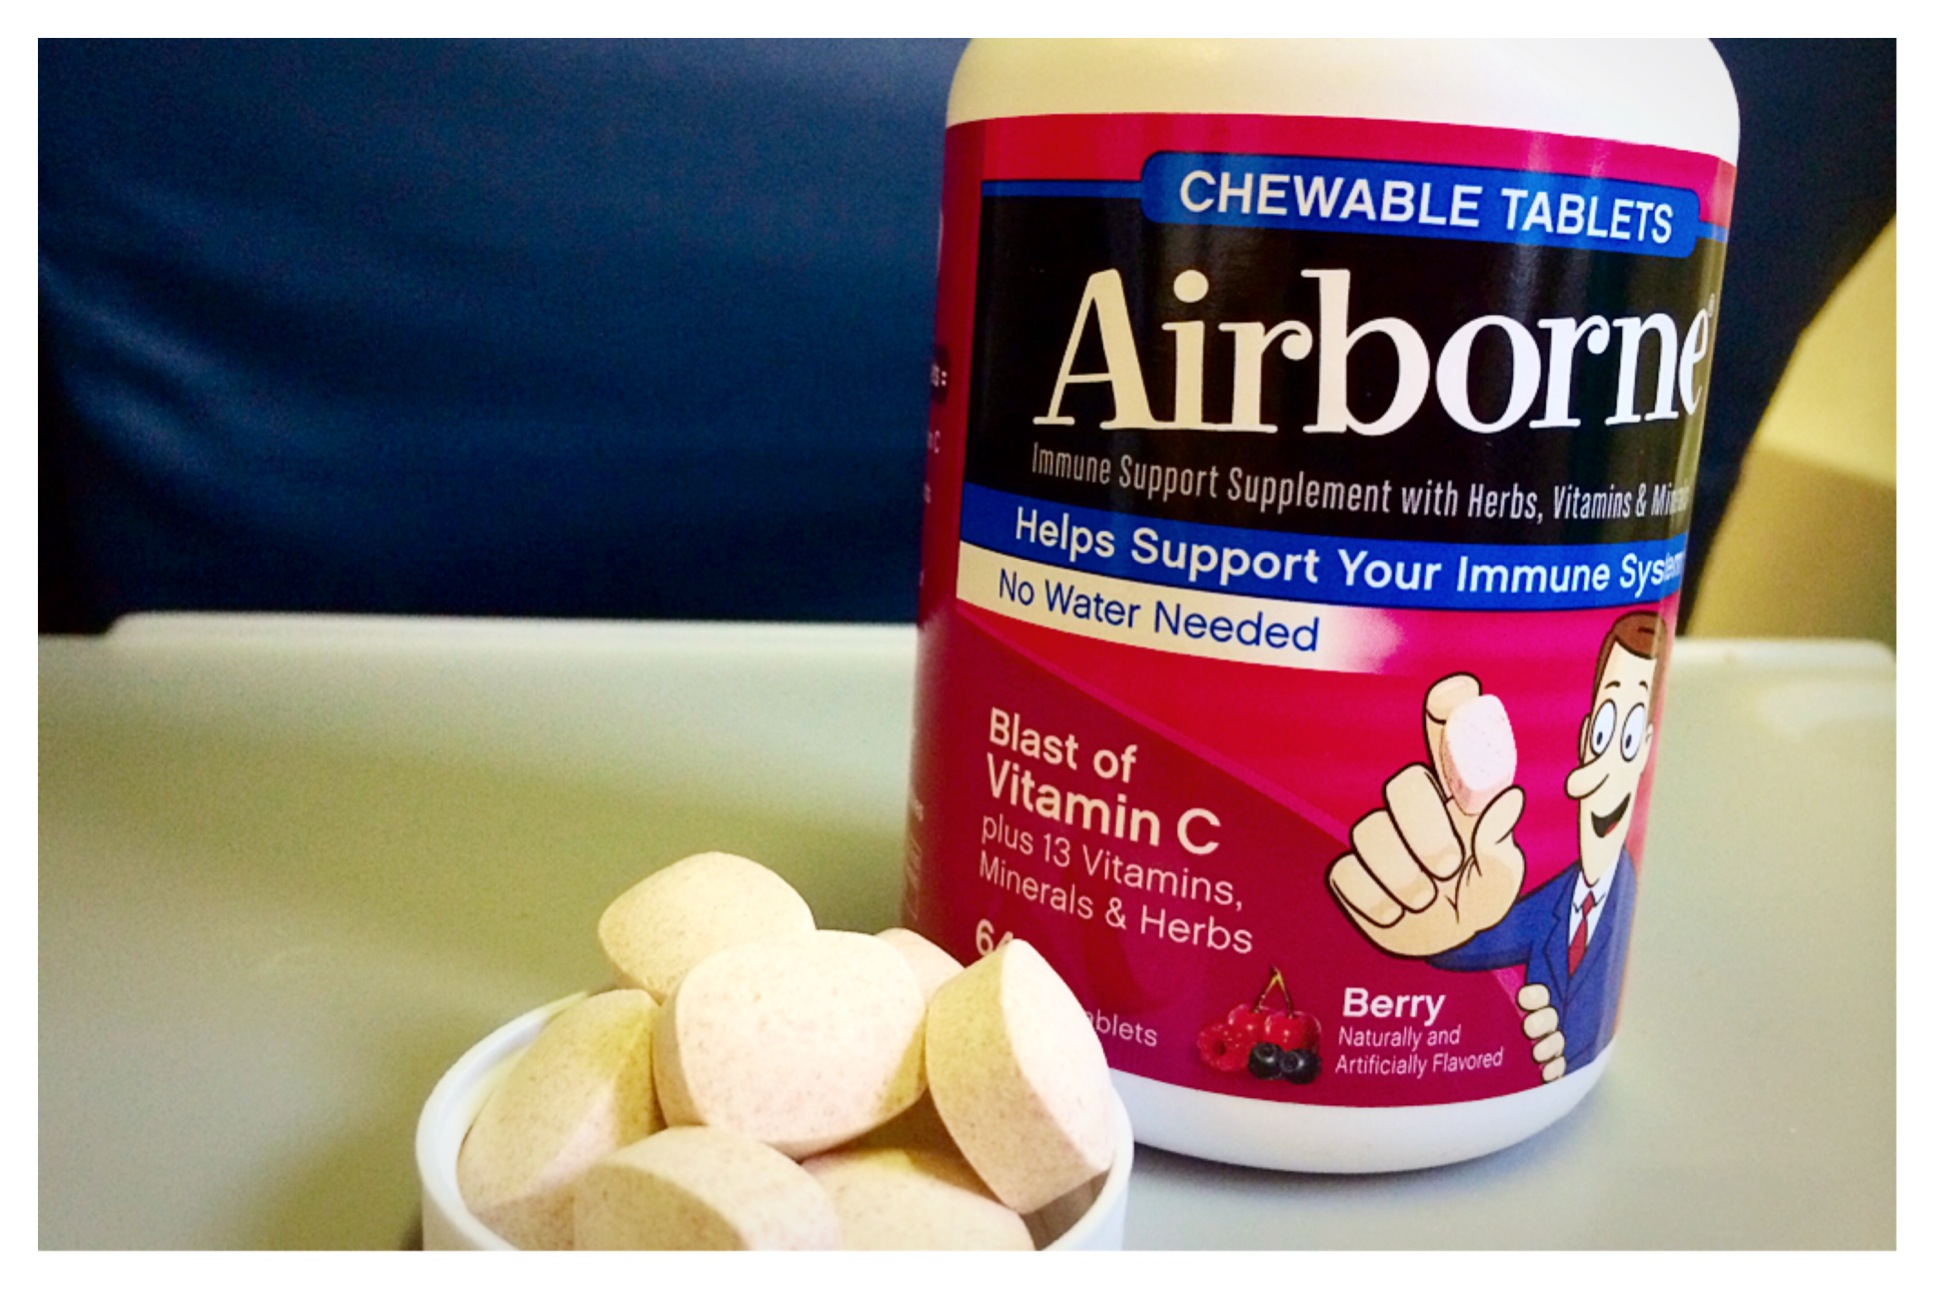 Airborne Tablets Do They Work Travel